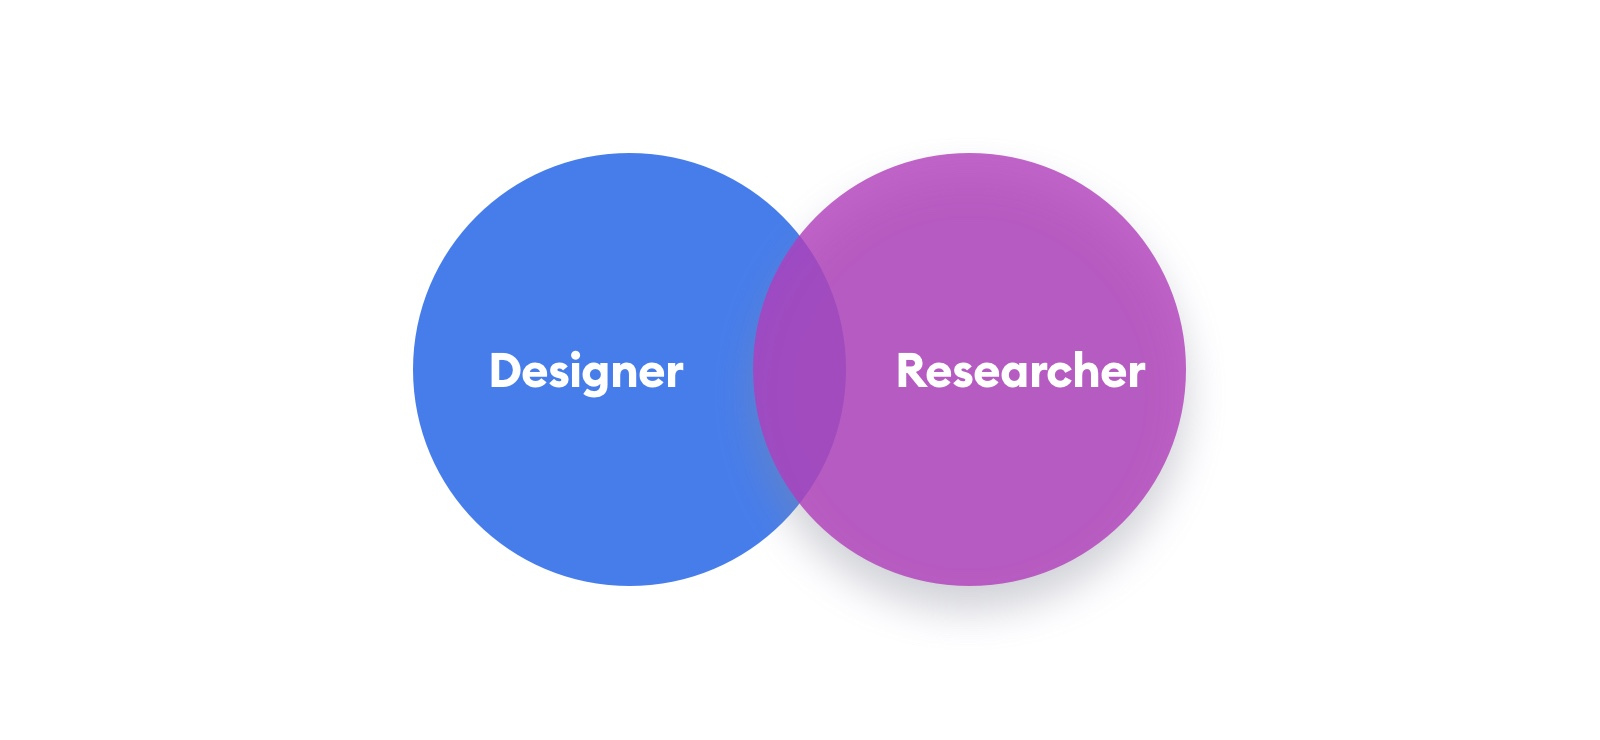 designers and researchers are the main roles in UX